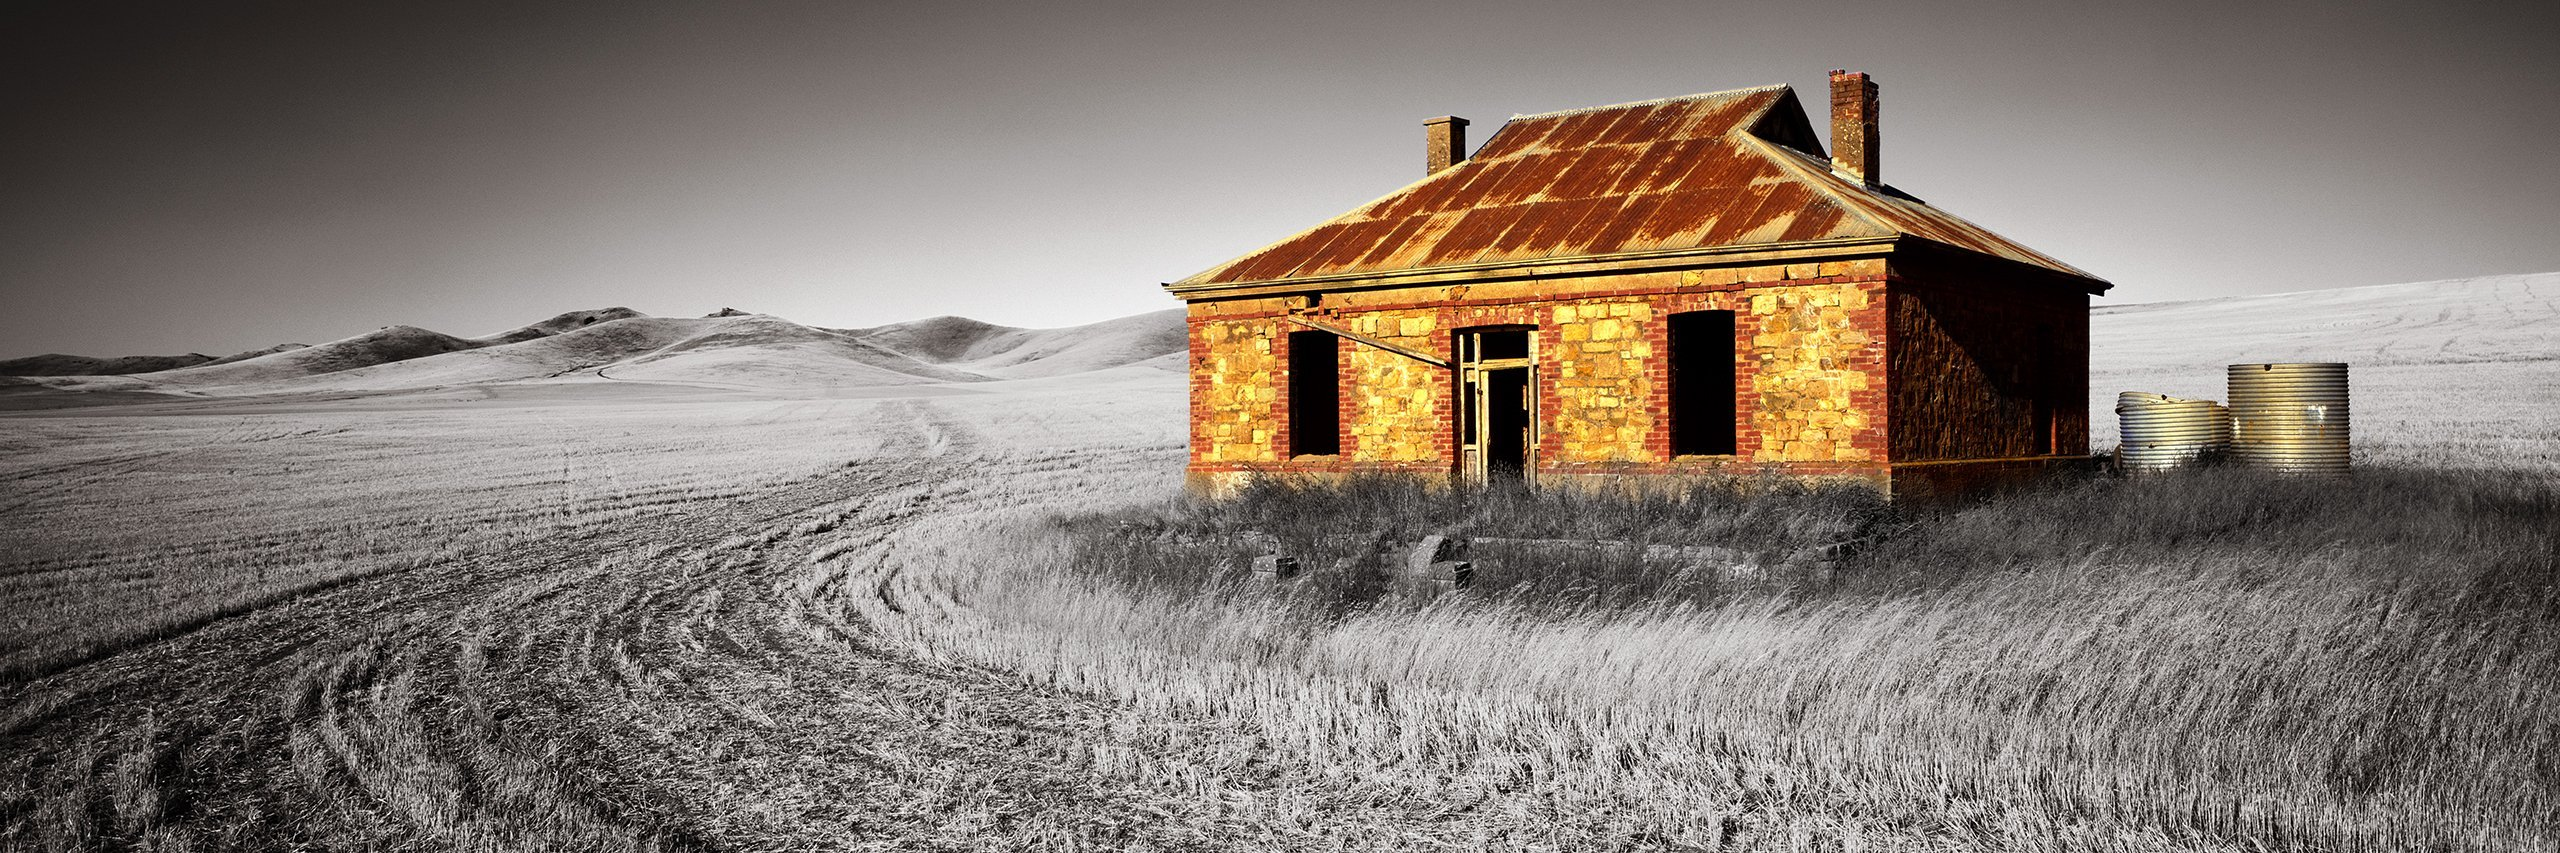 Digitally altered version of Burra hoimestead, SA, Australia.